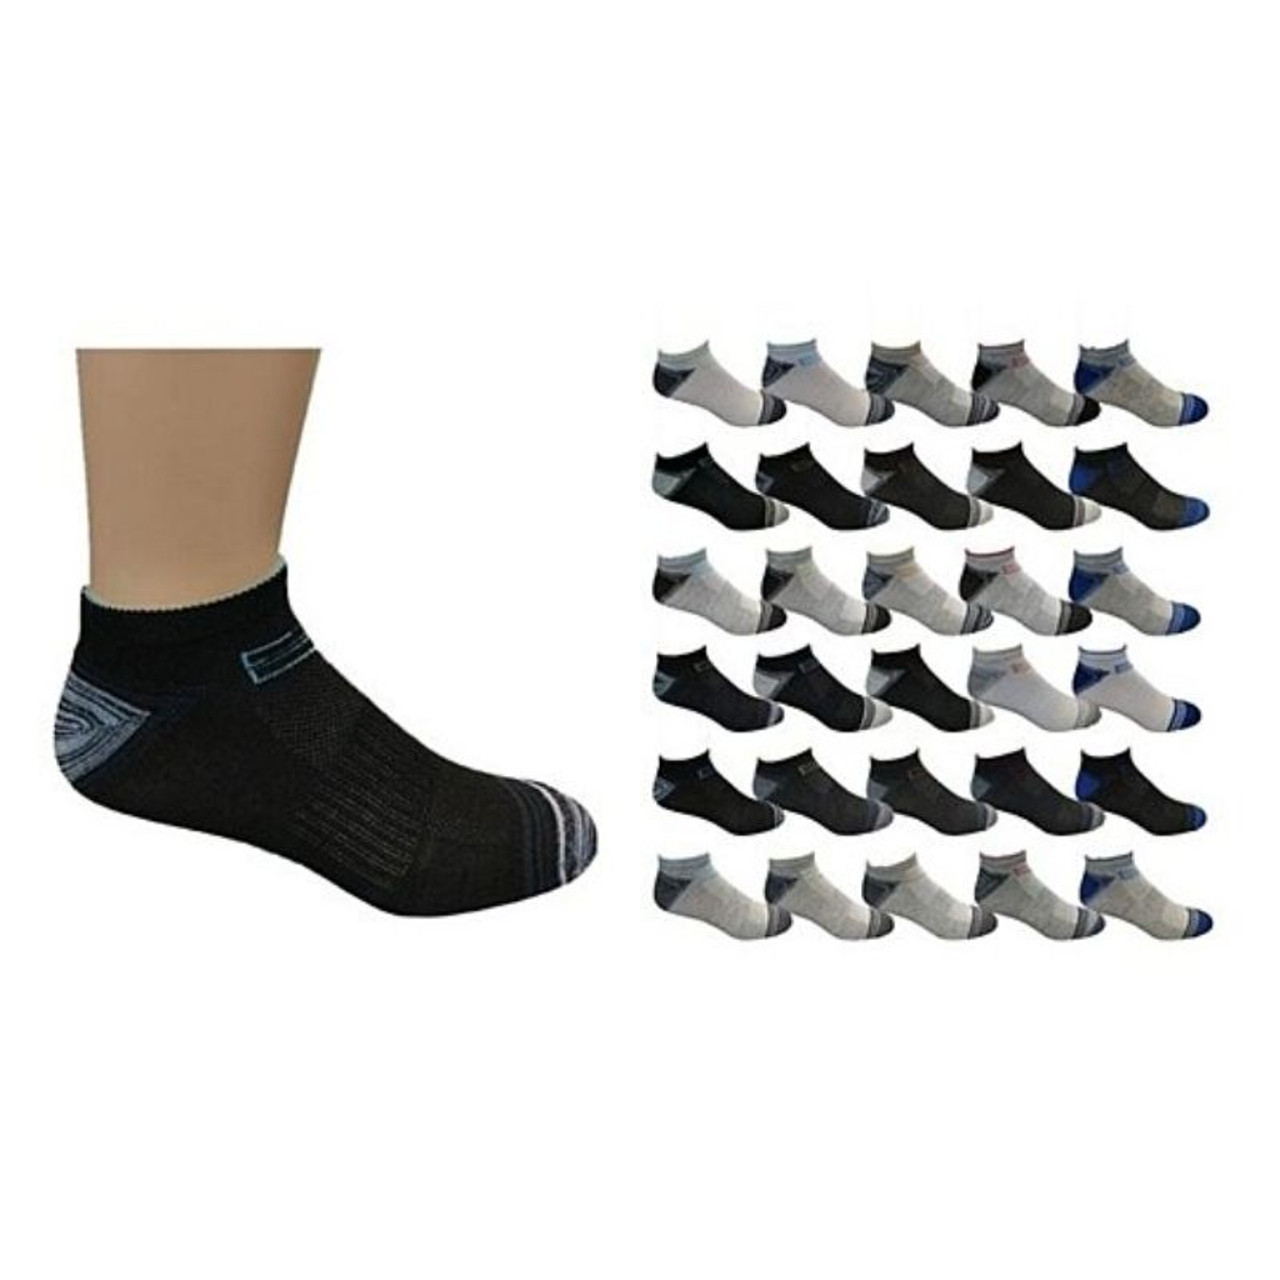 Mystery Deal: Assorted Men's Moisture Wicking Low-Cut Socks - 20 Pairs